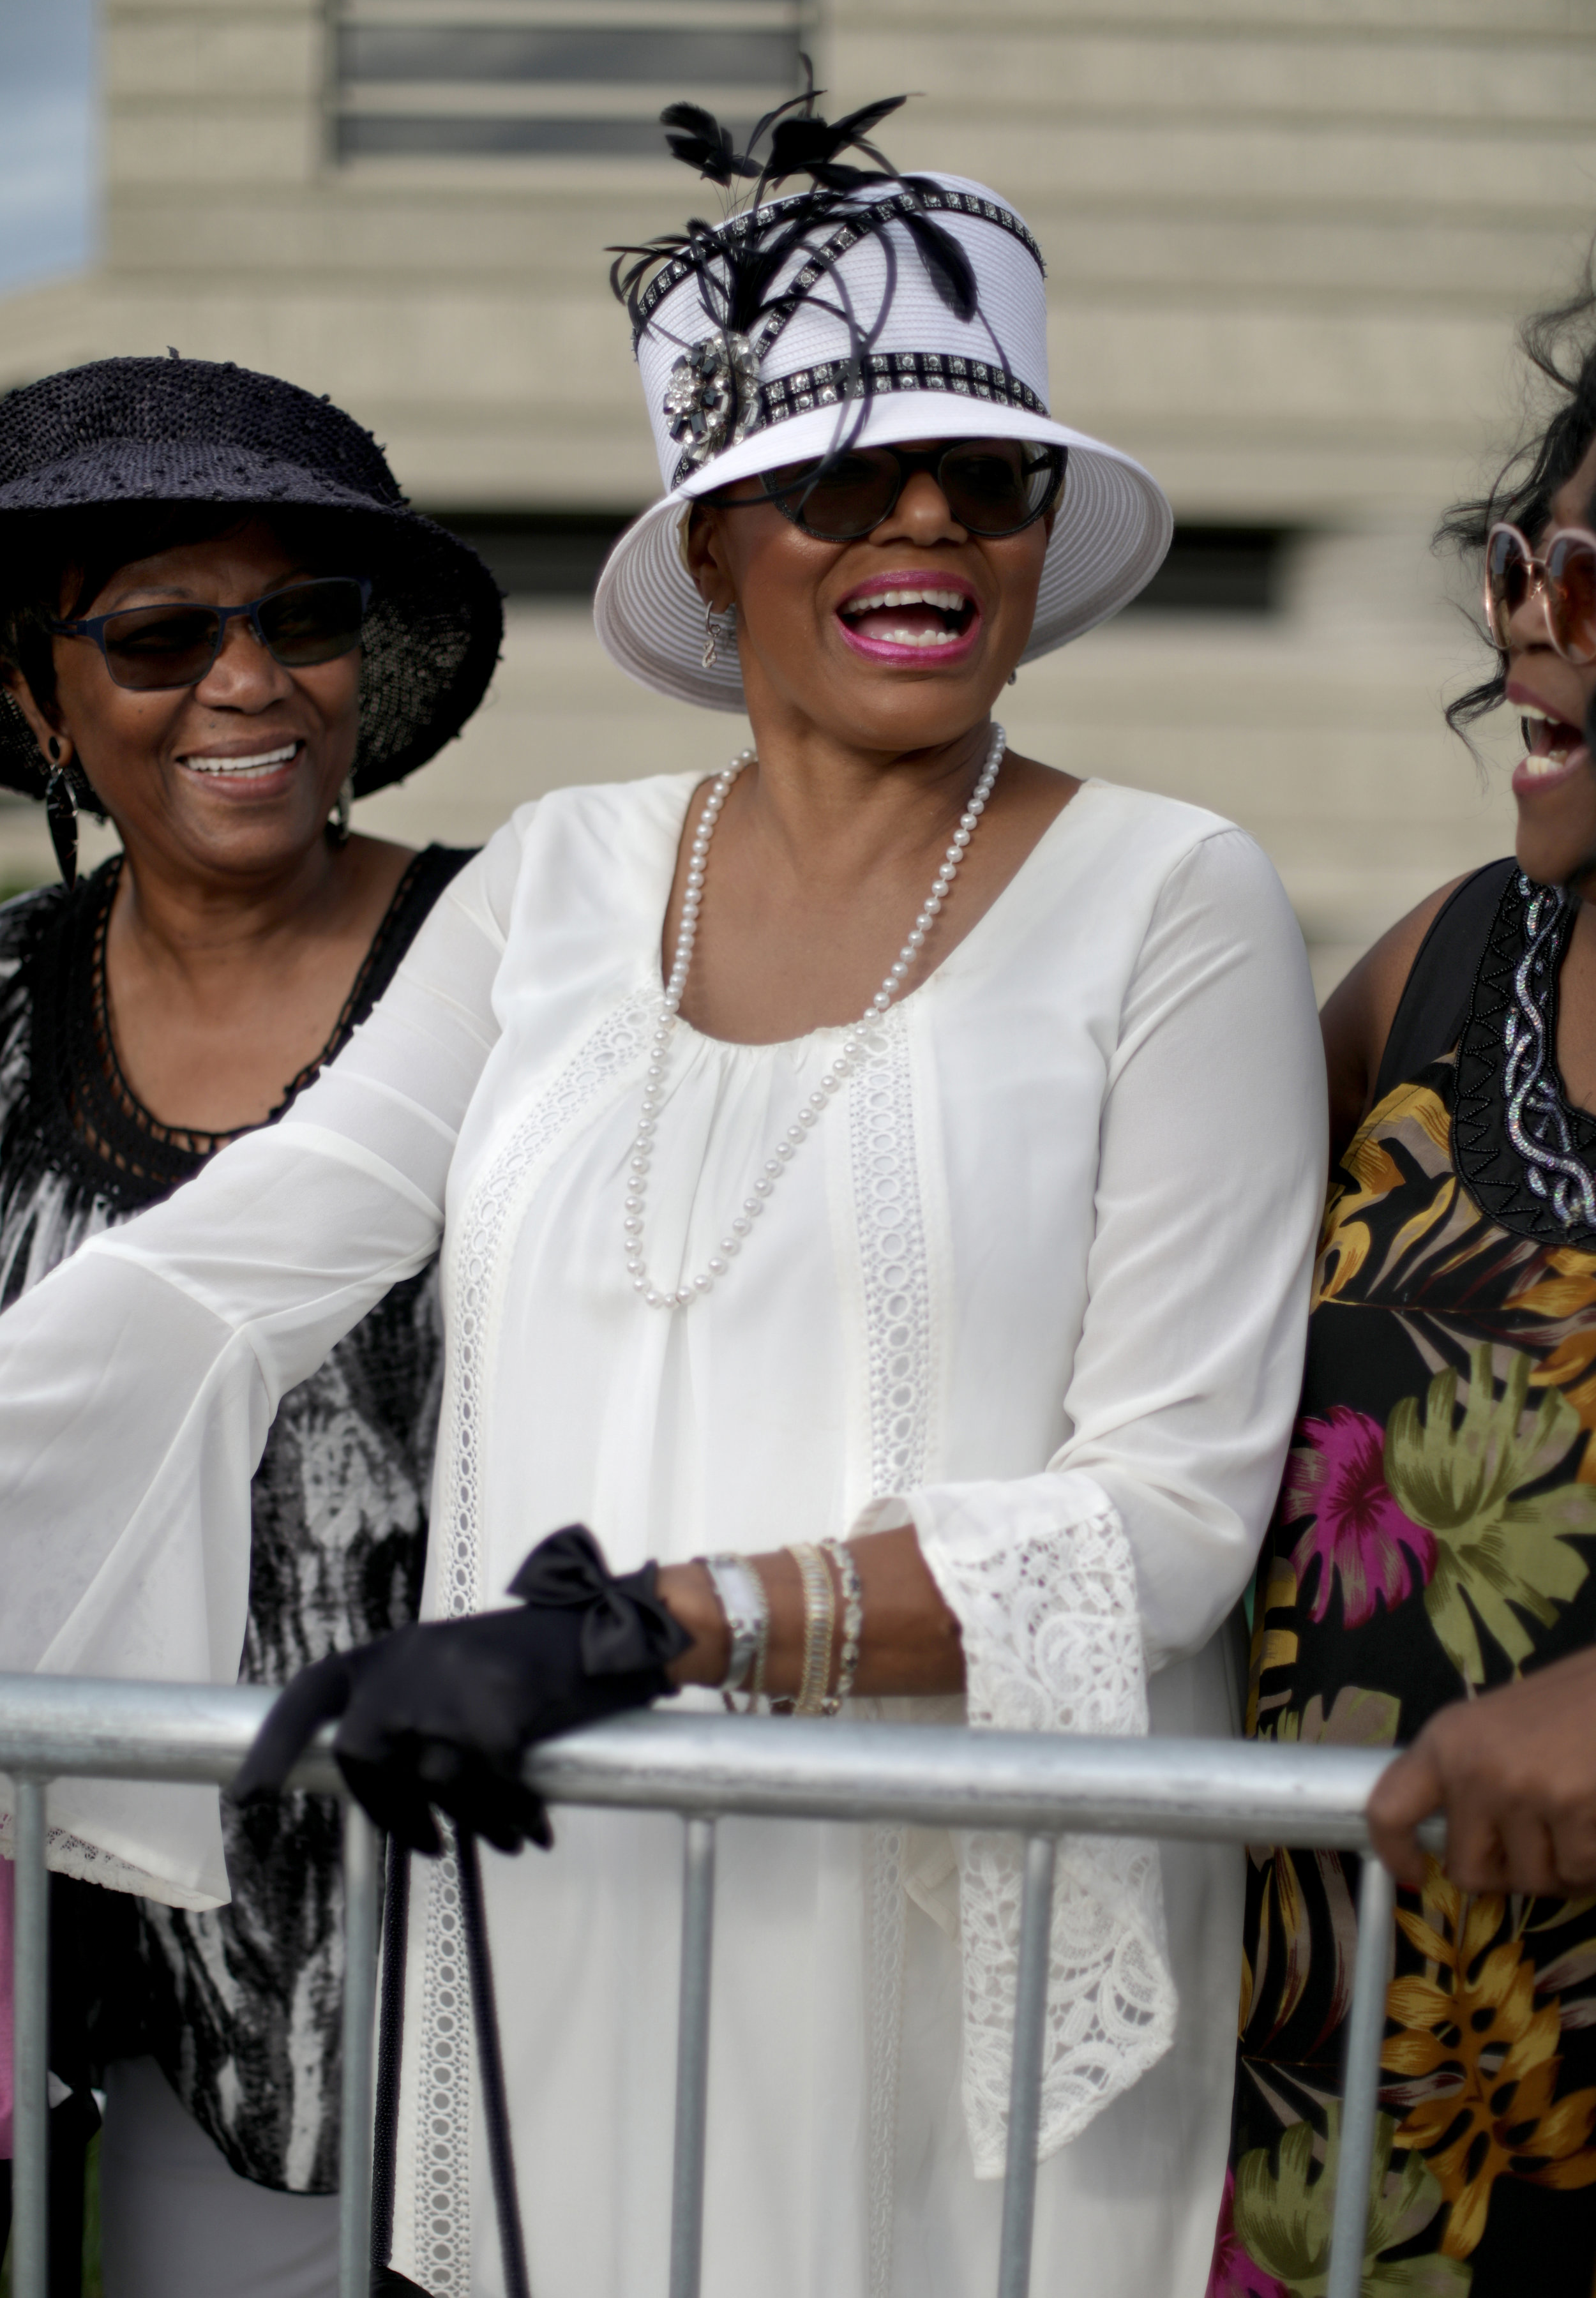 Rev. Bonnie Gardner, 68 of Redford, MI from left DeLoris Taylor, 63 of Kathleen, Ga. and Pat Bryant, 68 of Tennille, Ga.